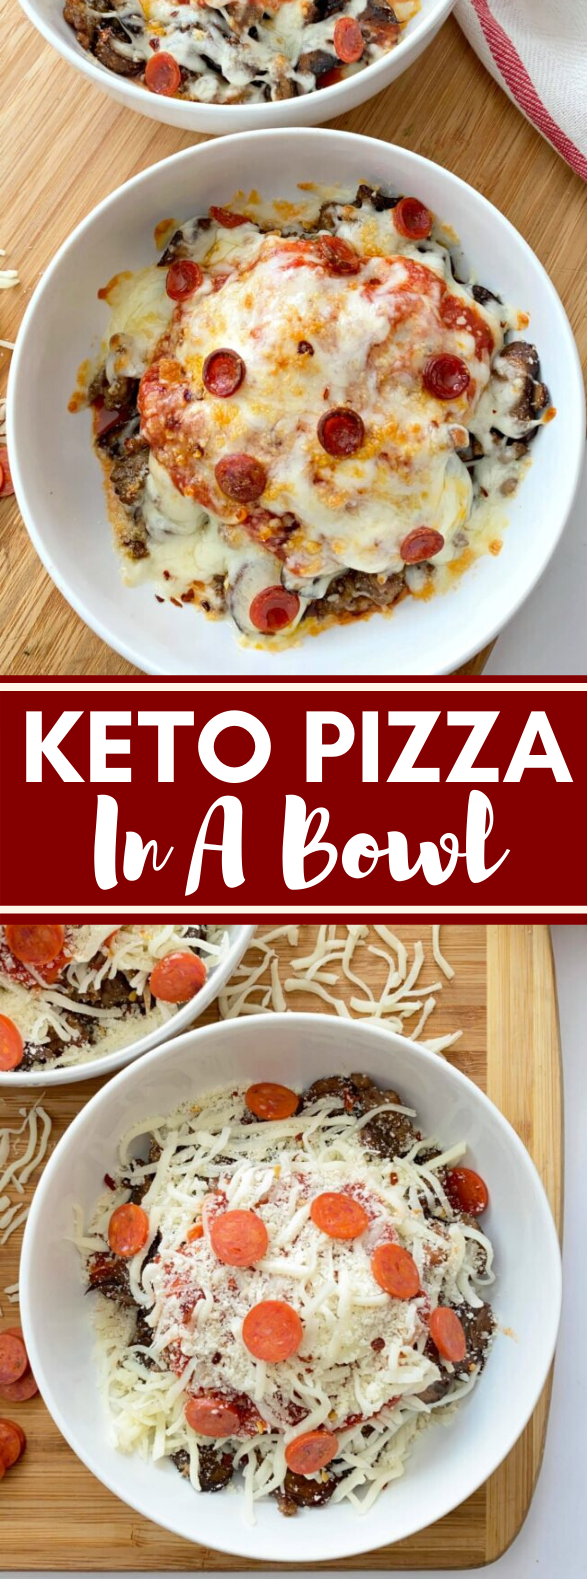 Keto Pizza In A Bowl #lowcarb #dinner